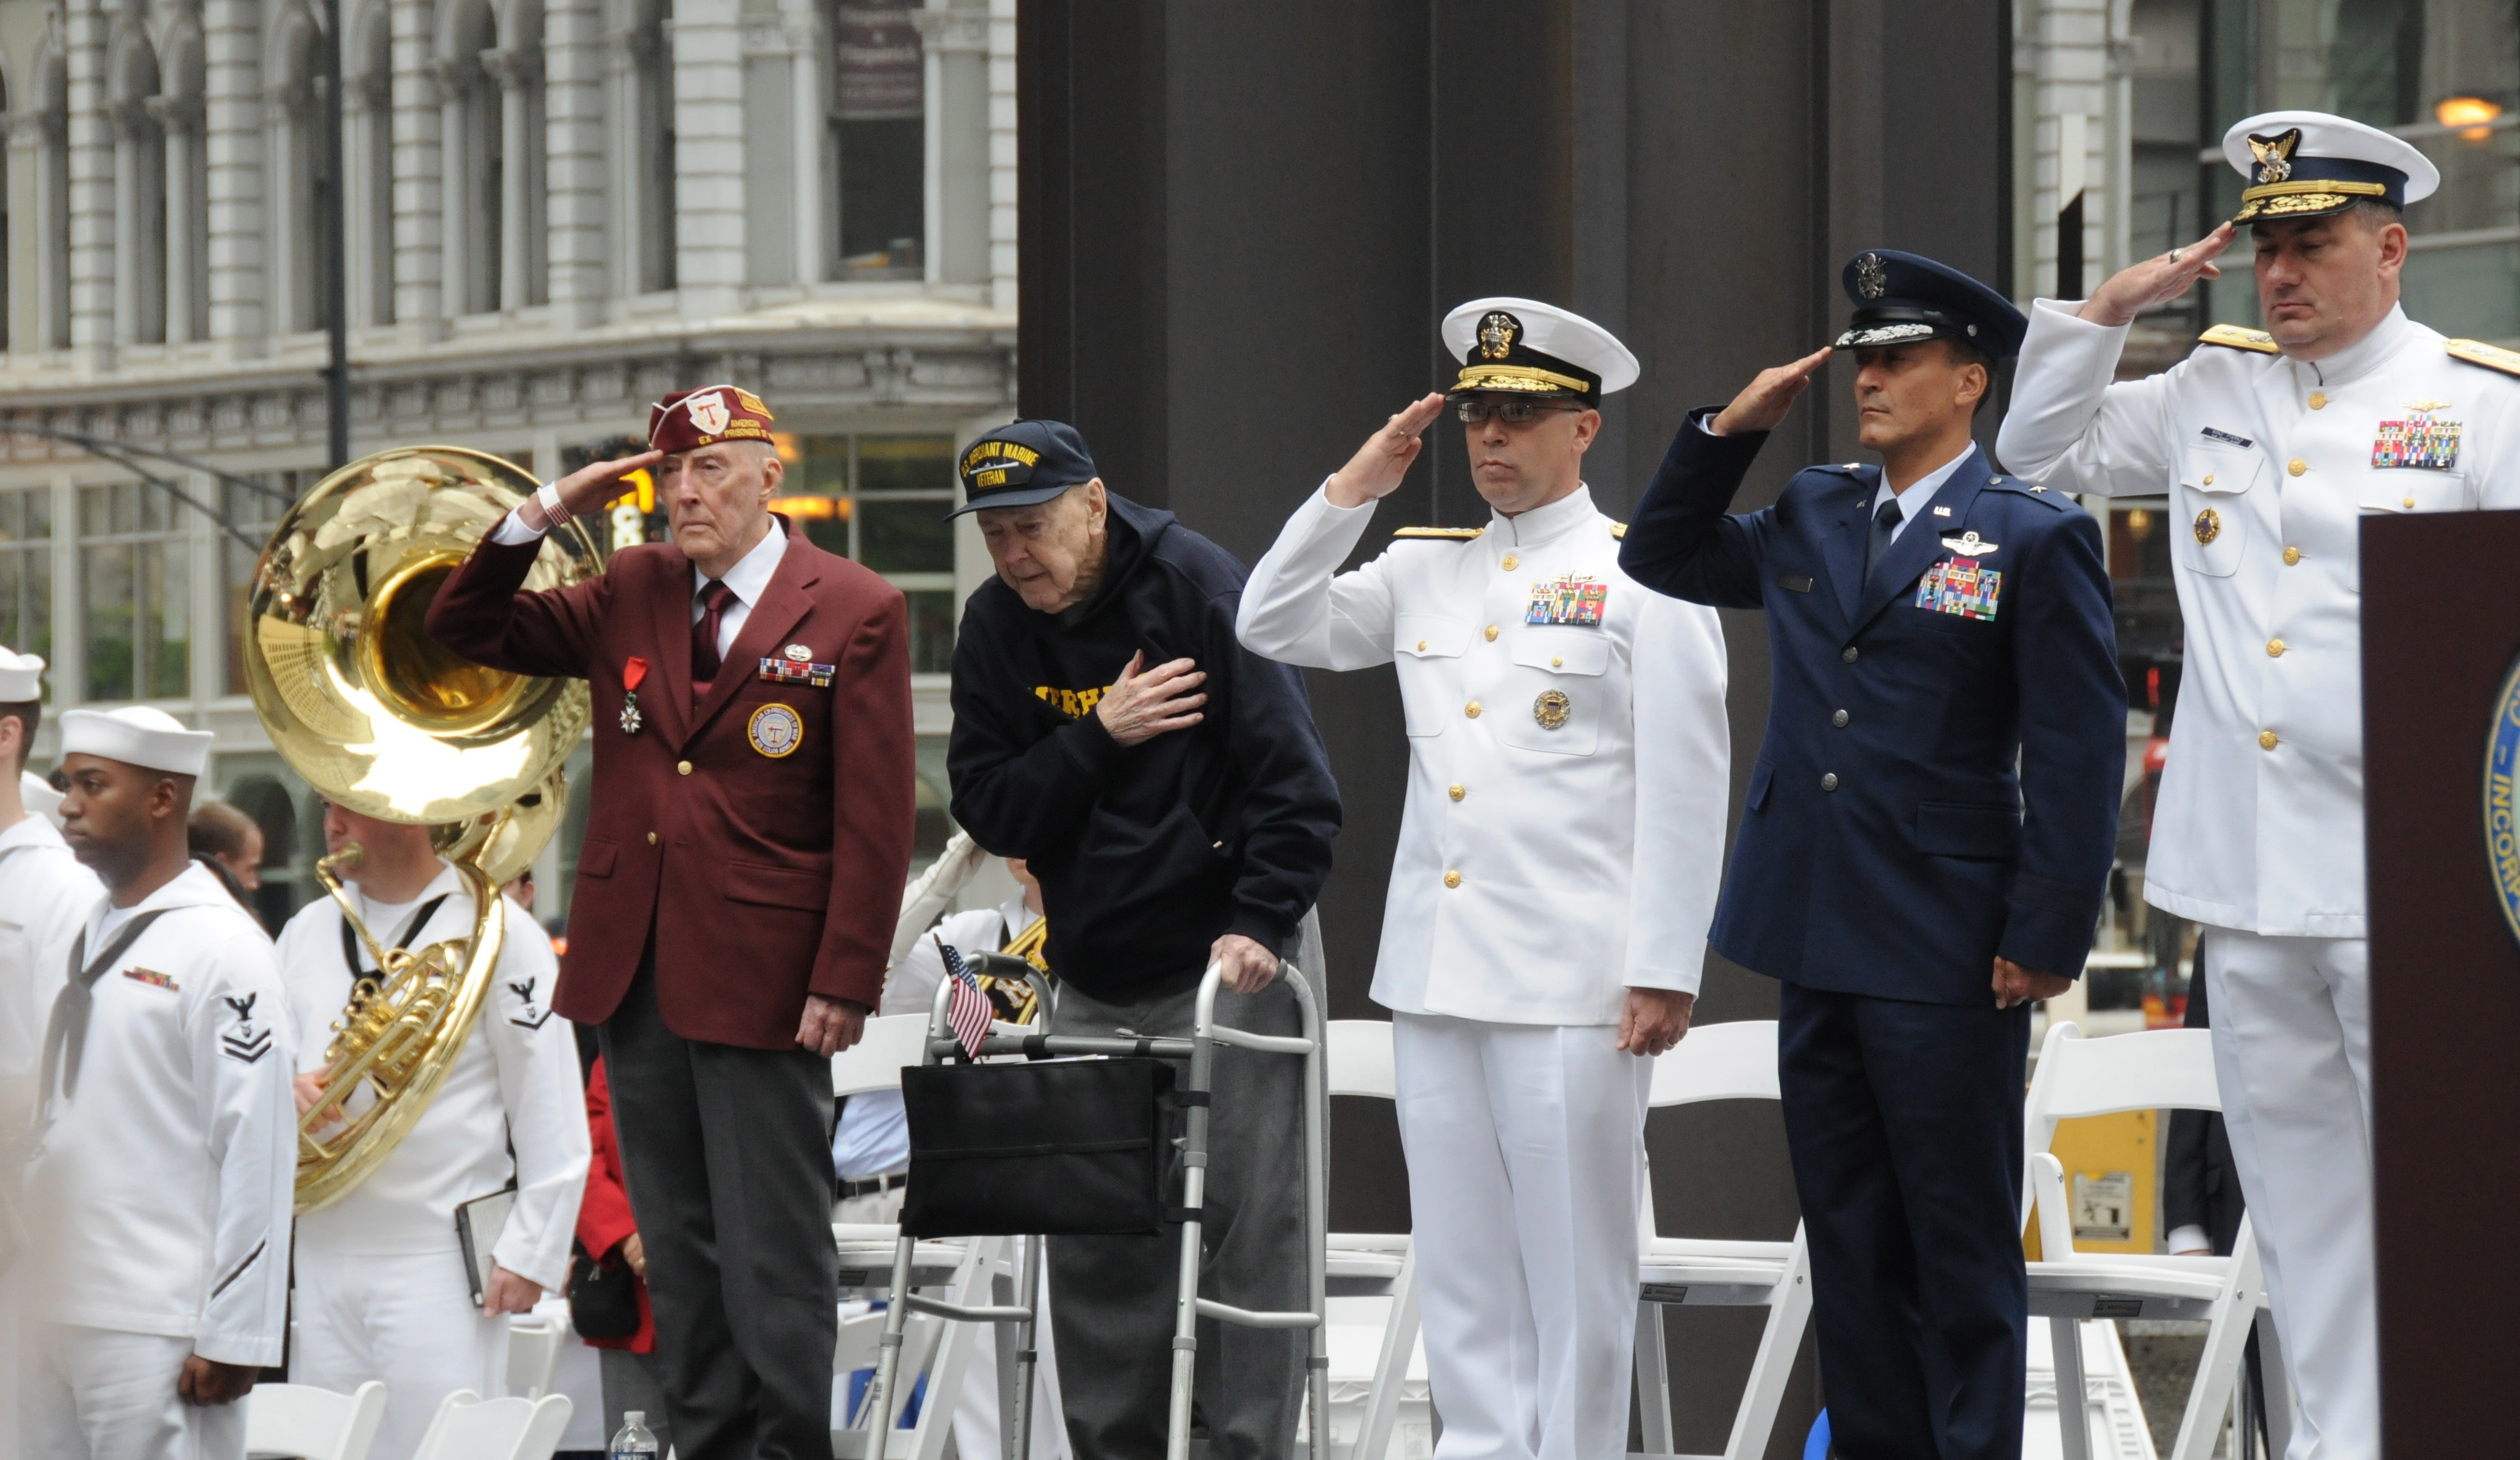 Chicago Memorial Day Ceremony and Parade | Article | The ...